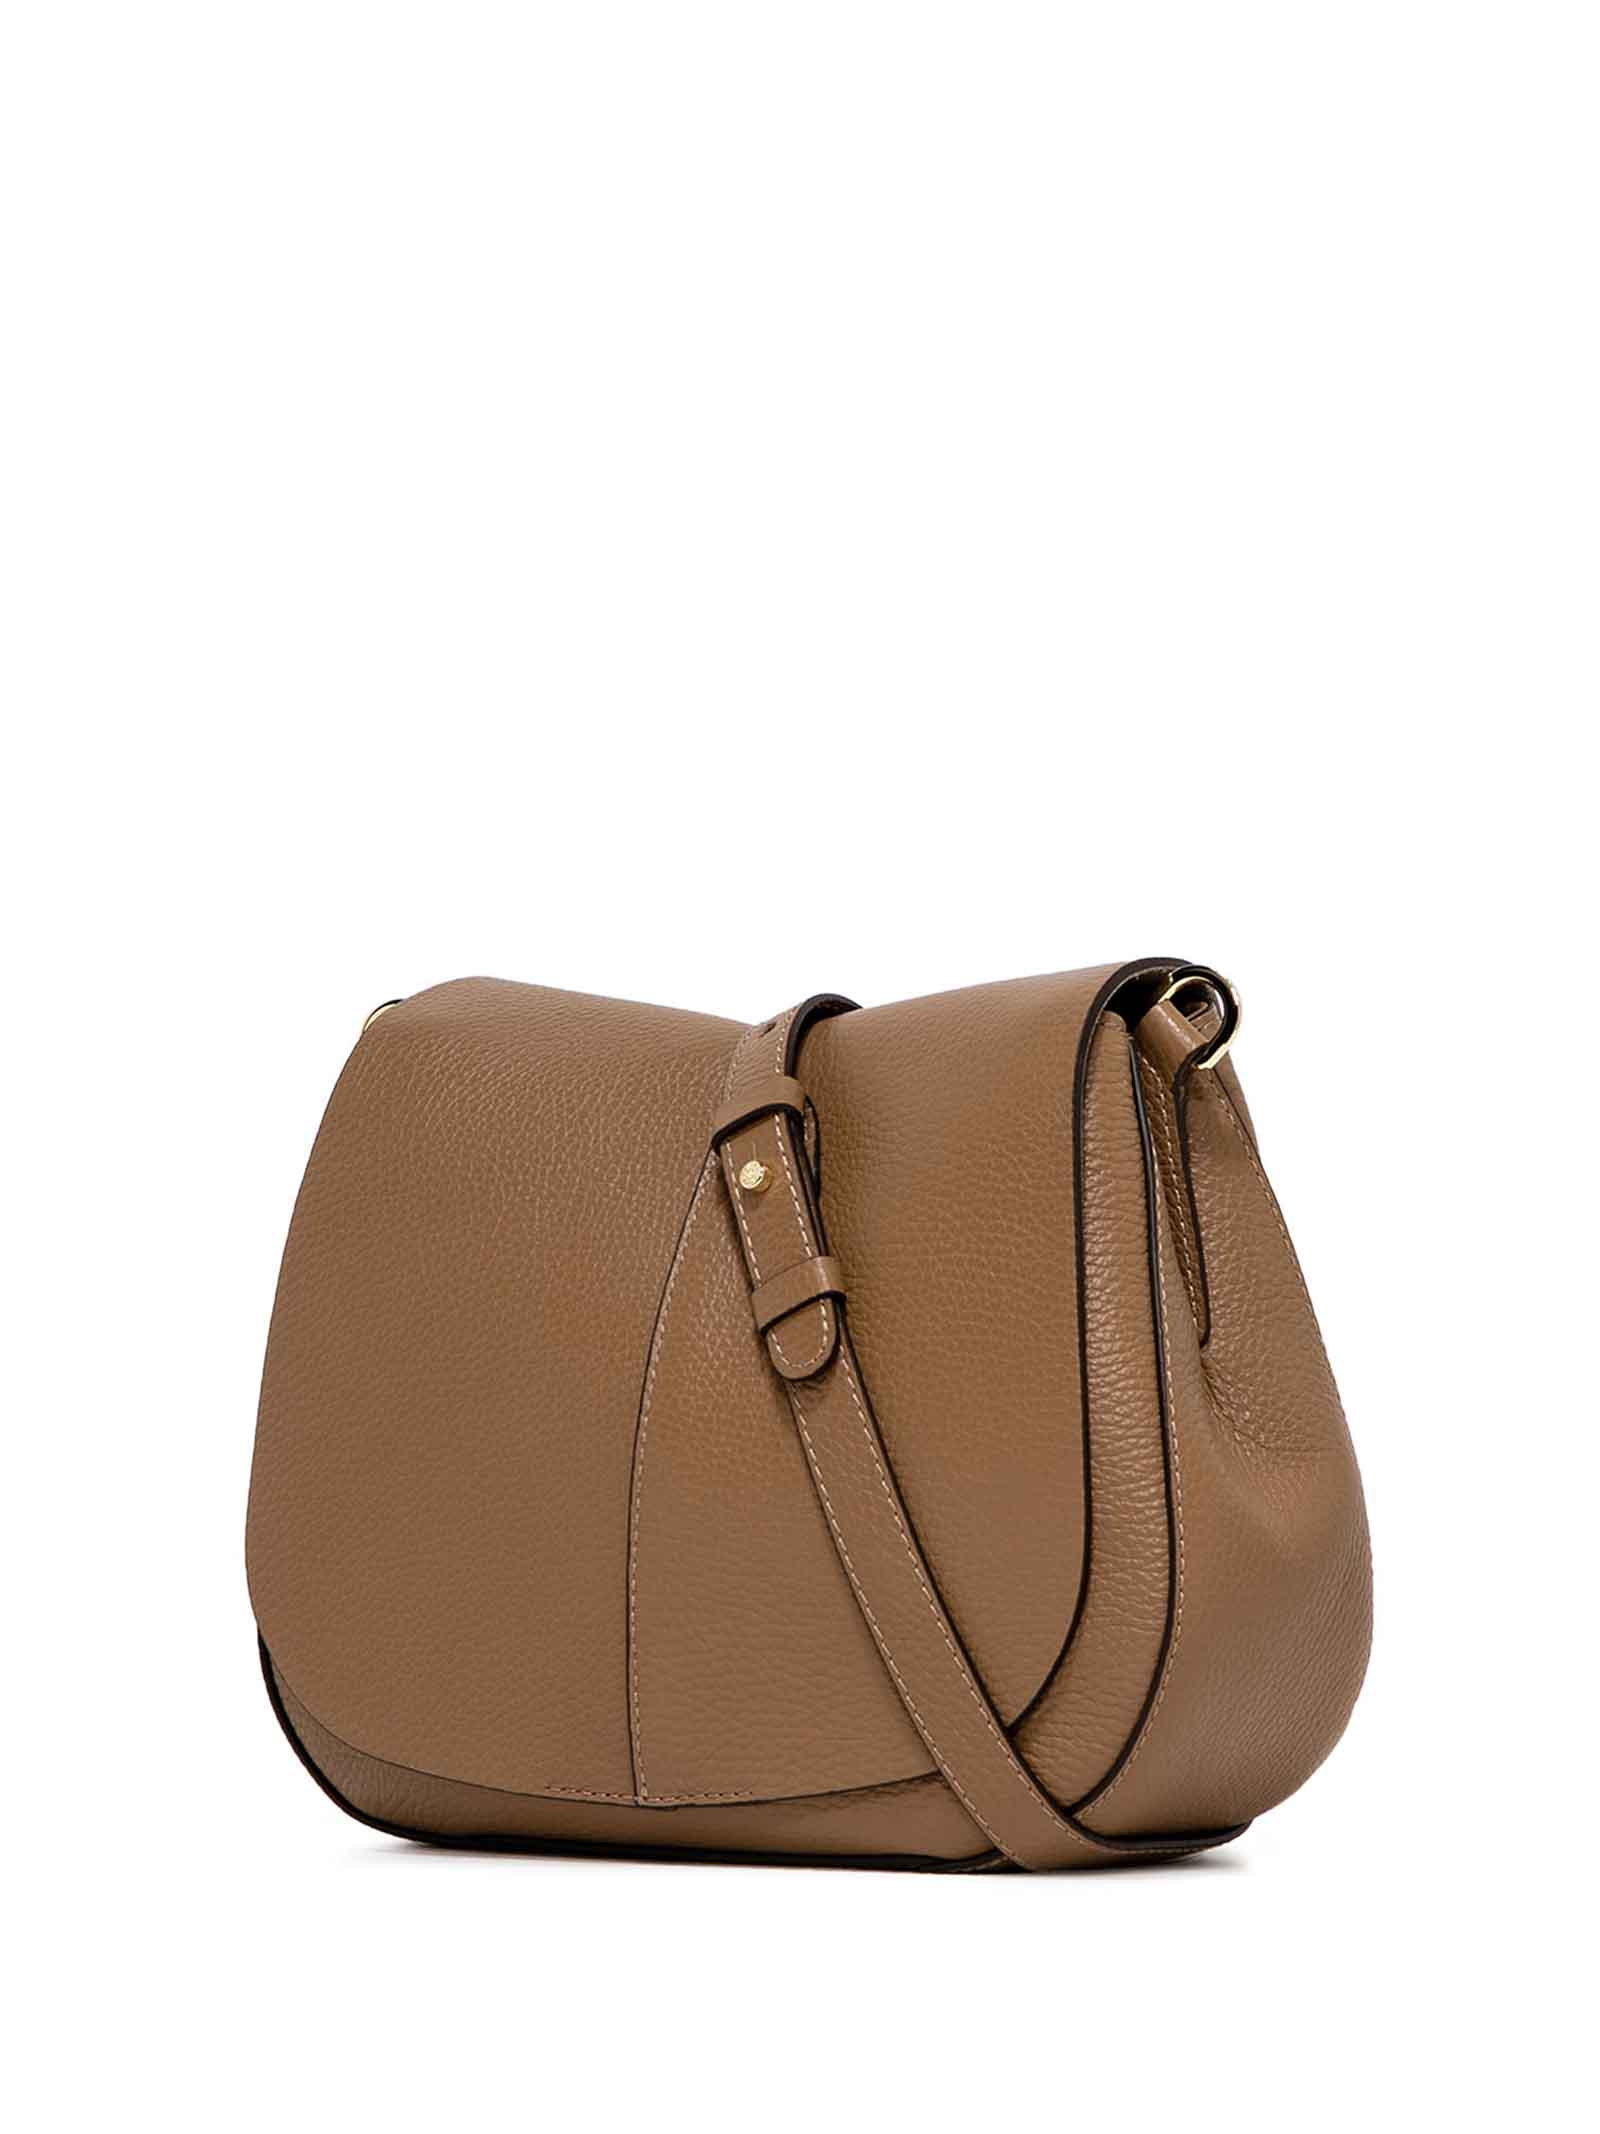 Women's Cross-body Bag Helena Round in Camel Hammered Leather with Flap and Double Adjustable and Detachable Cross-body Strap Gianni Chiarini | Bags and backpacks | BS6036009